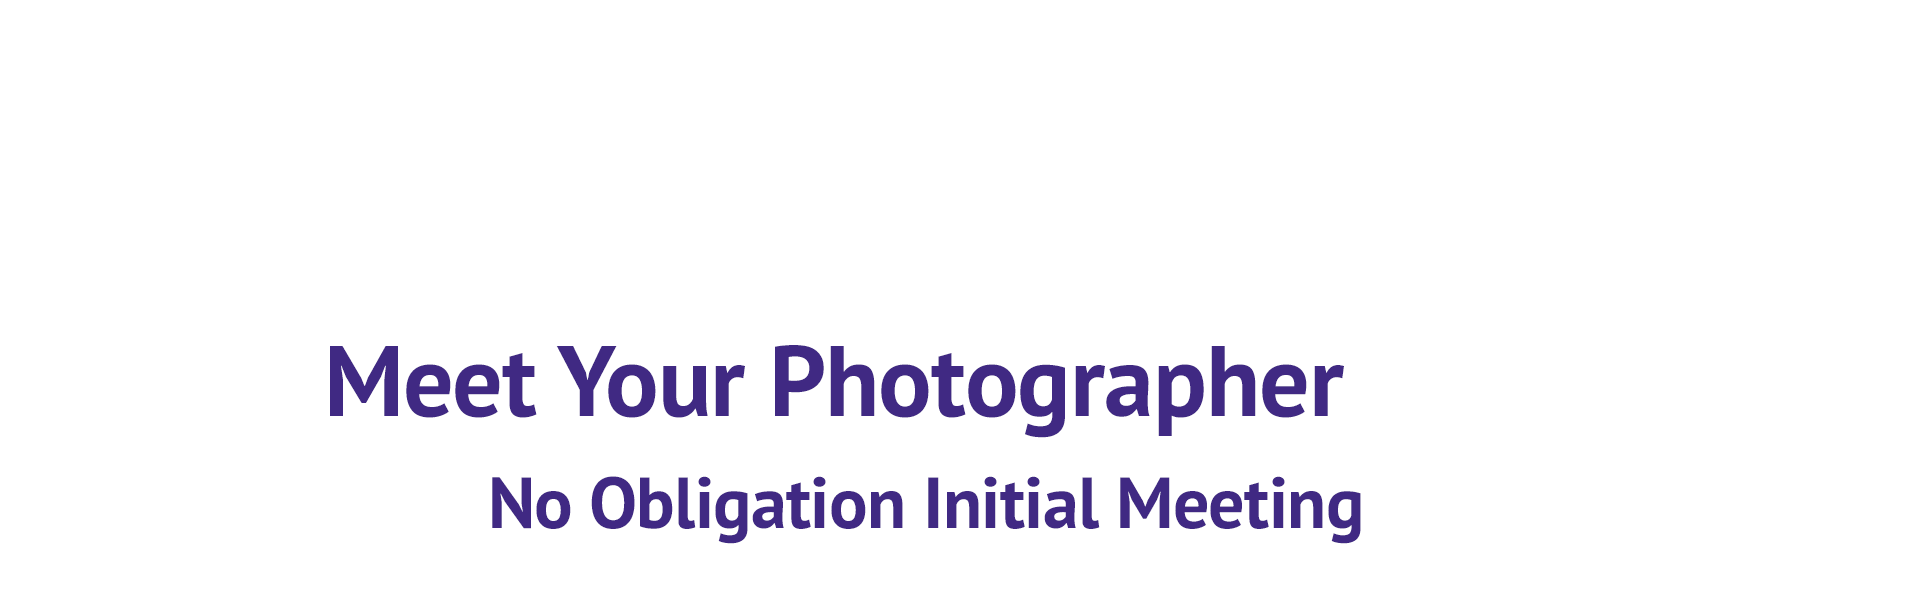 Meet Your Photographer No Obligation Initial Meeting